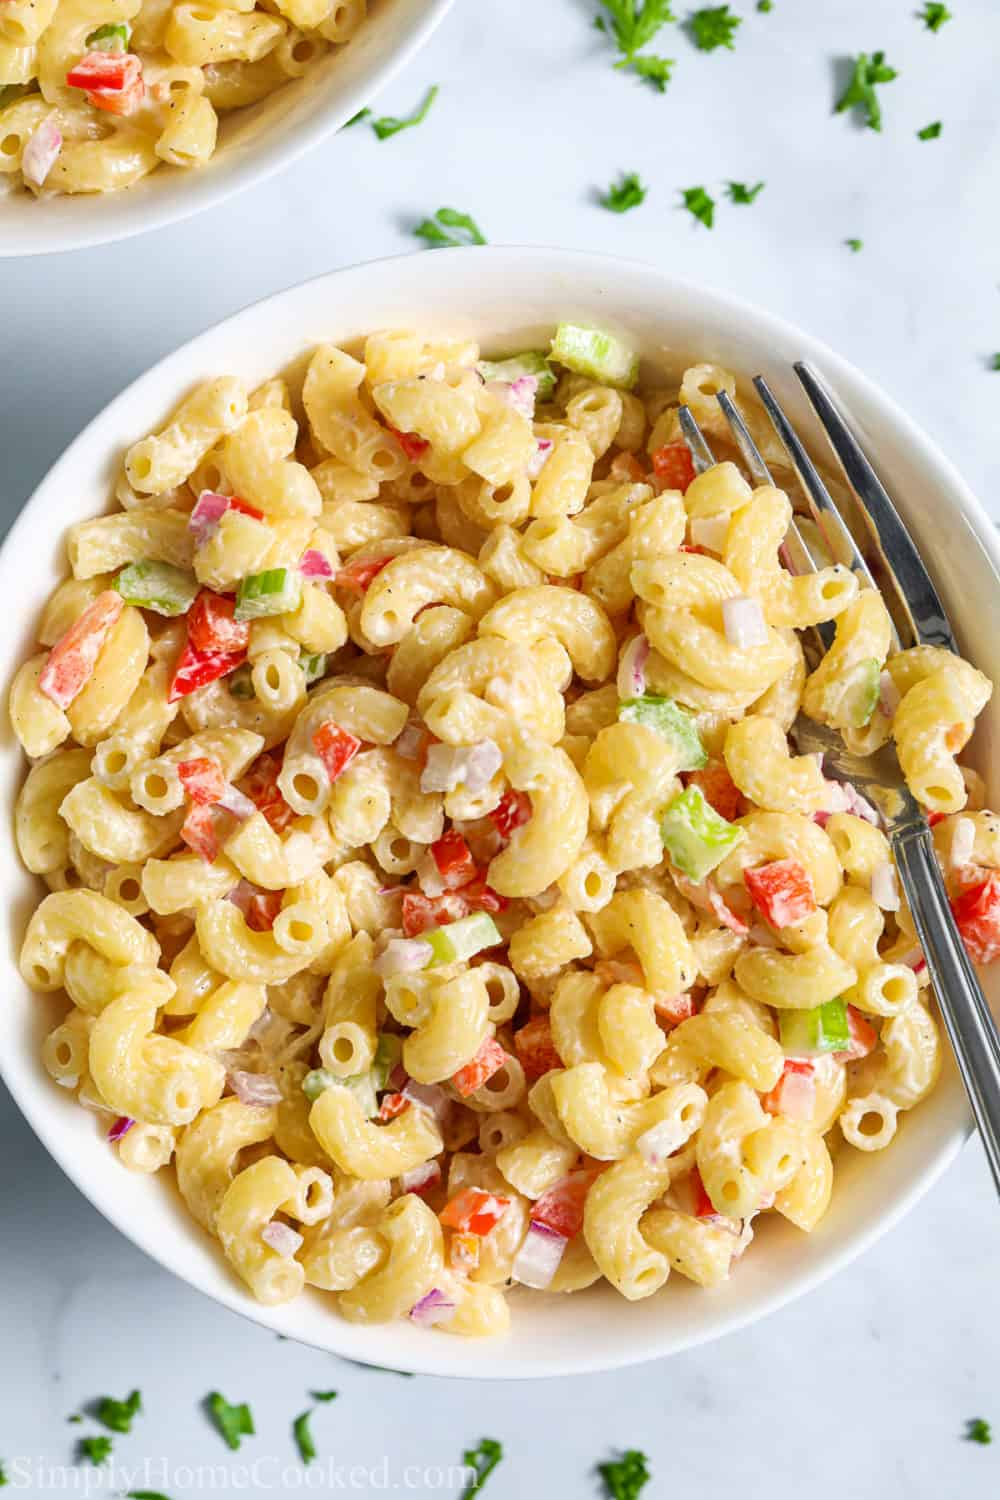 Bowl of Classic Creamy Pasta Salad with a fork in it and another bowl in the backgrround.